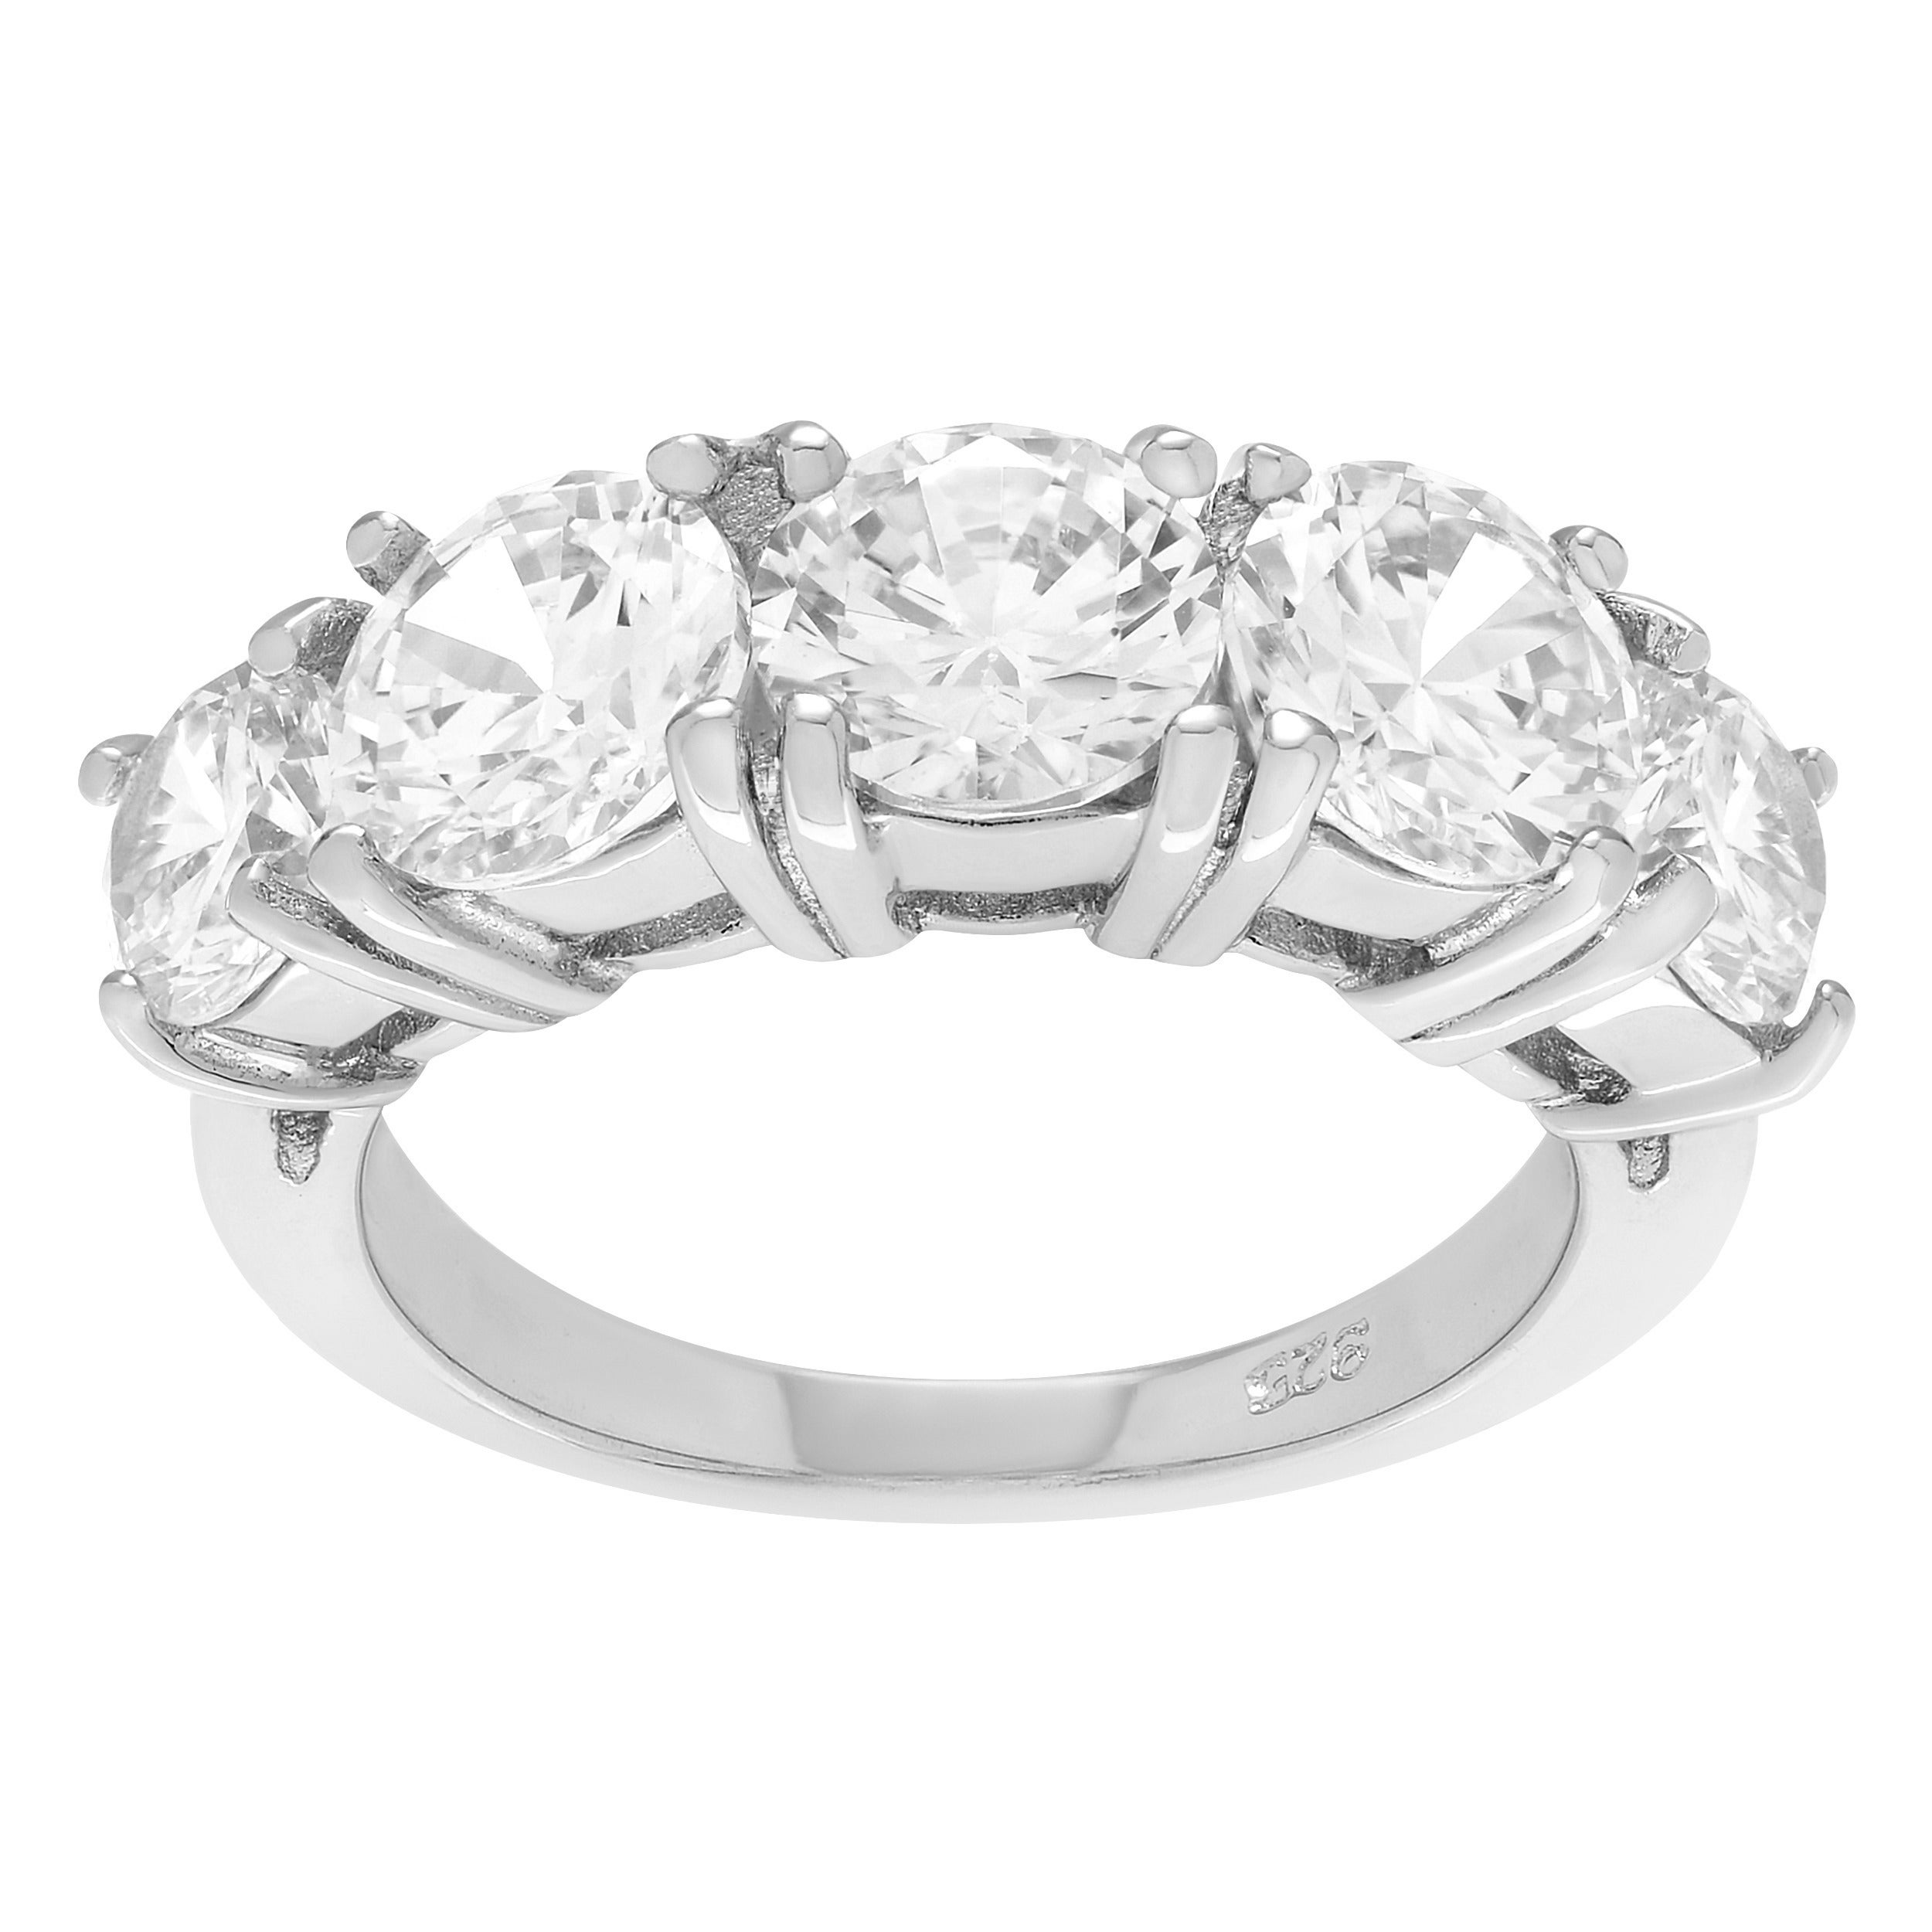 rings wedding engagement in product jewellers ring the diamond set front platinum stone three browns